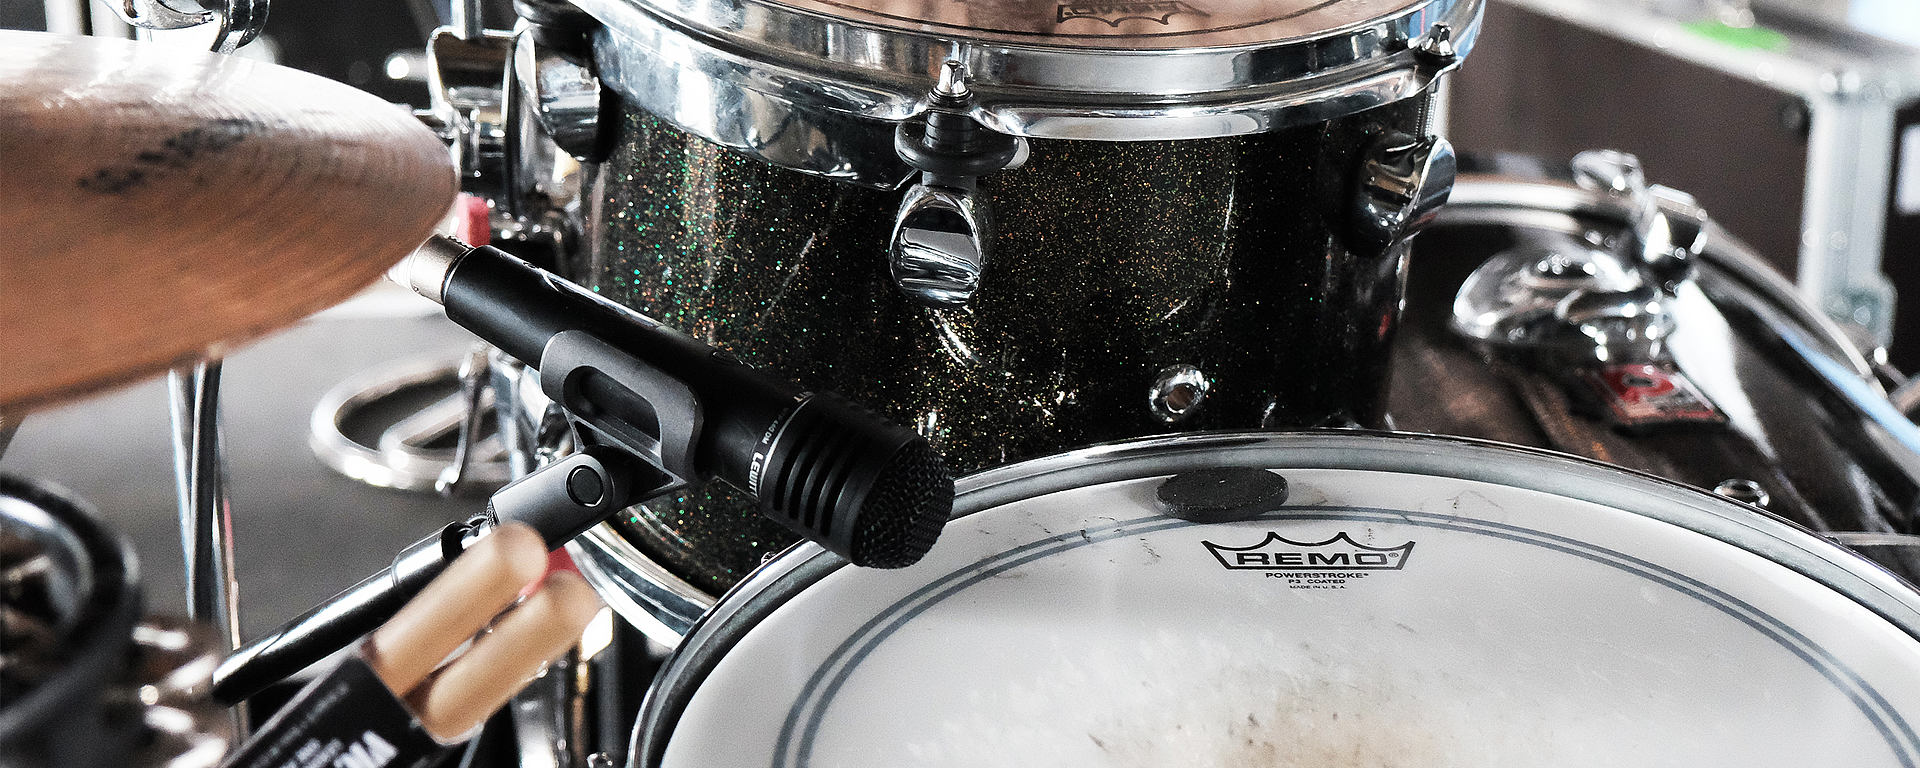 MTP 440 with snare drums